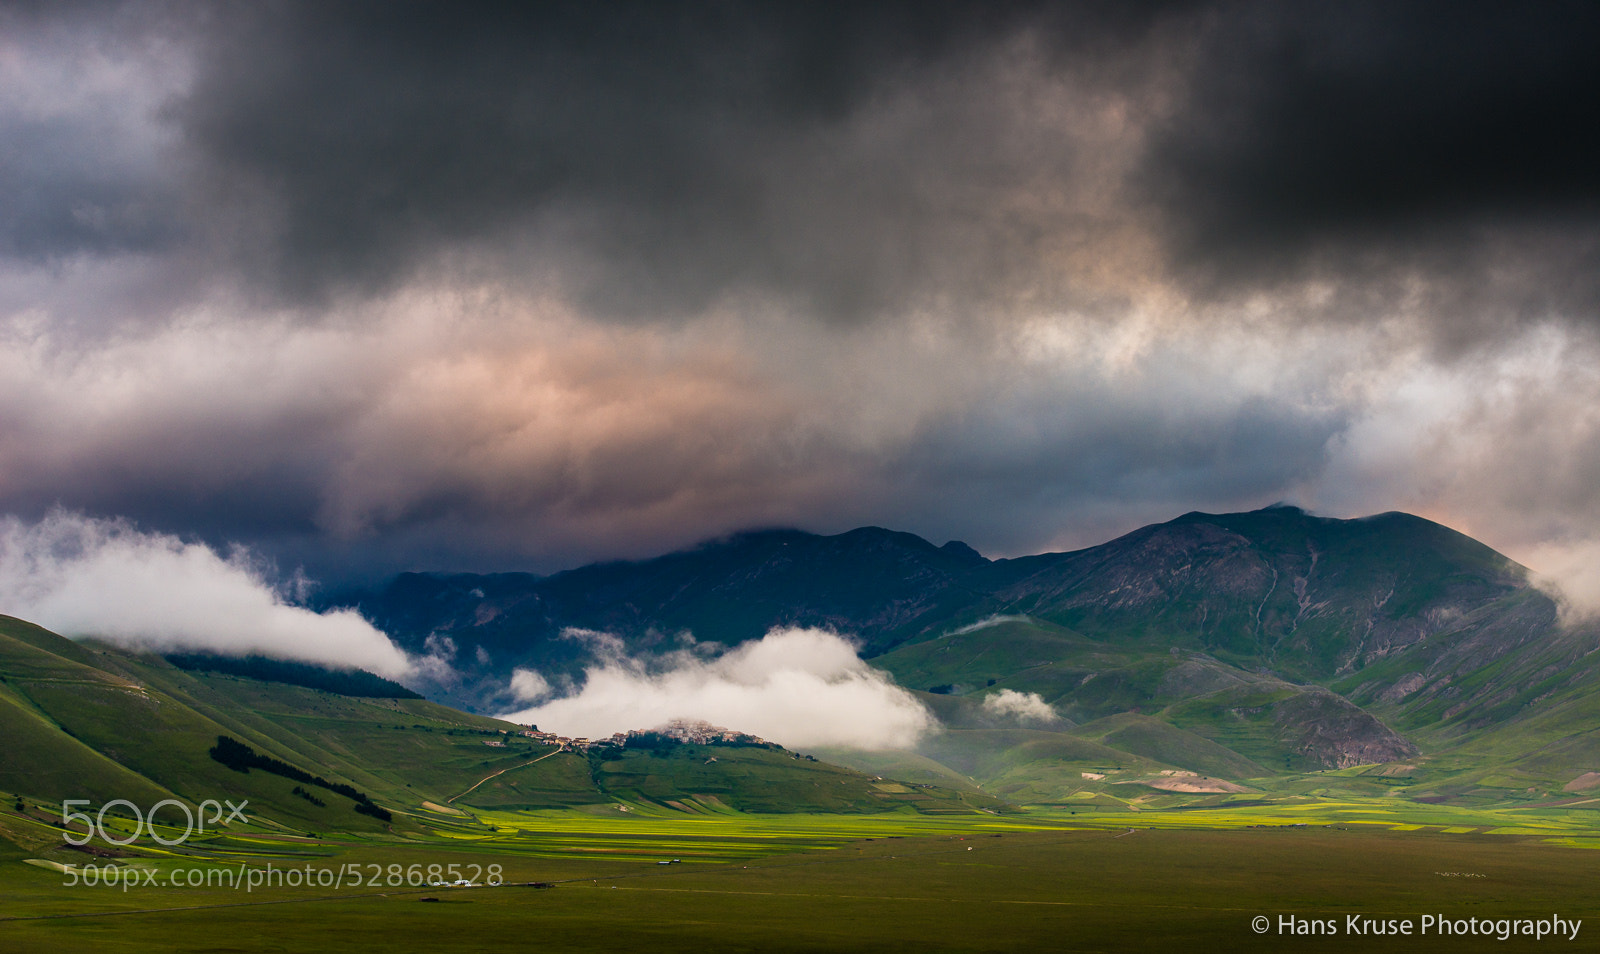 Photograph Morning at Piano Grande at Castelluccio by Hans Kruse on 500px